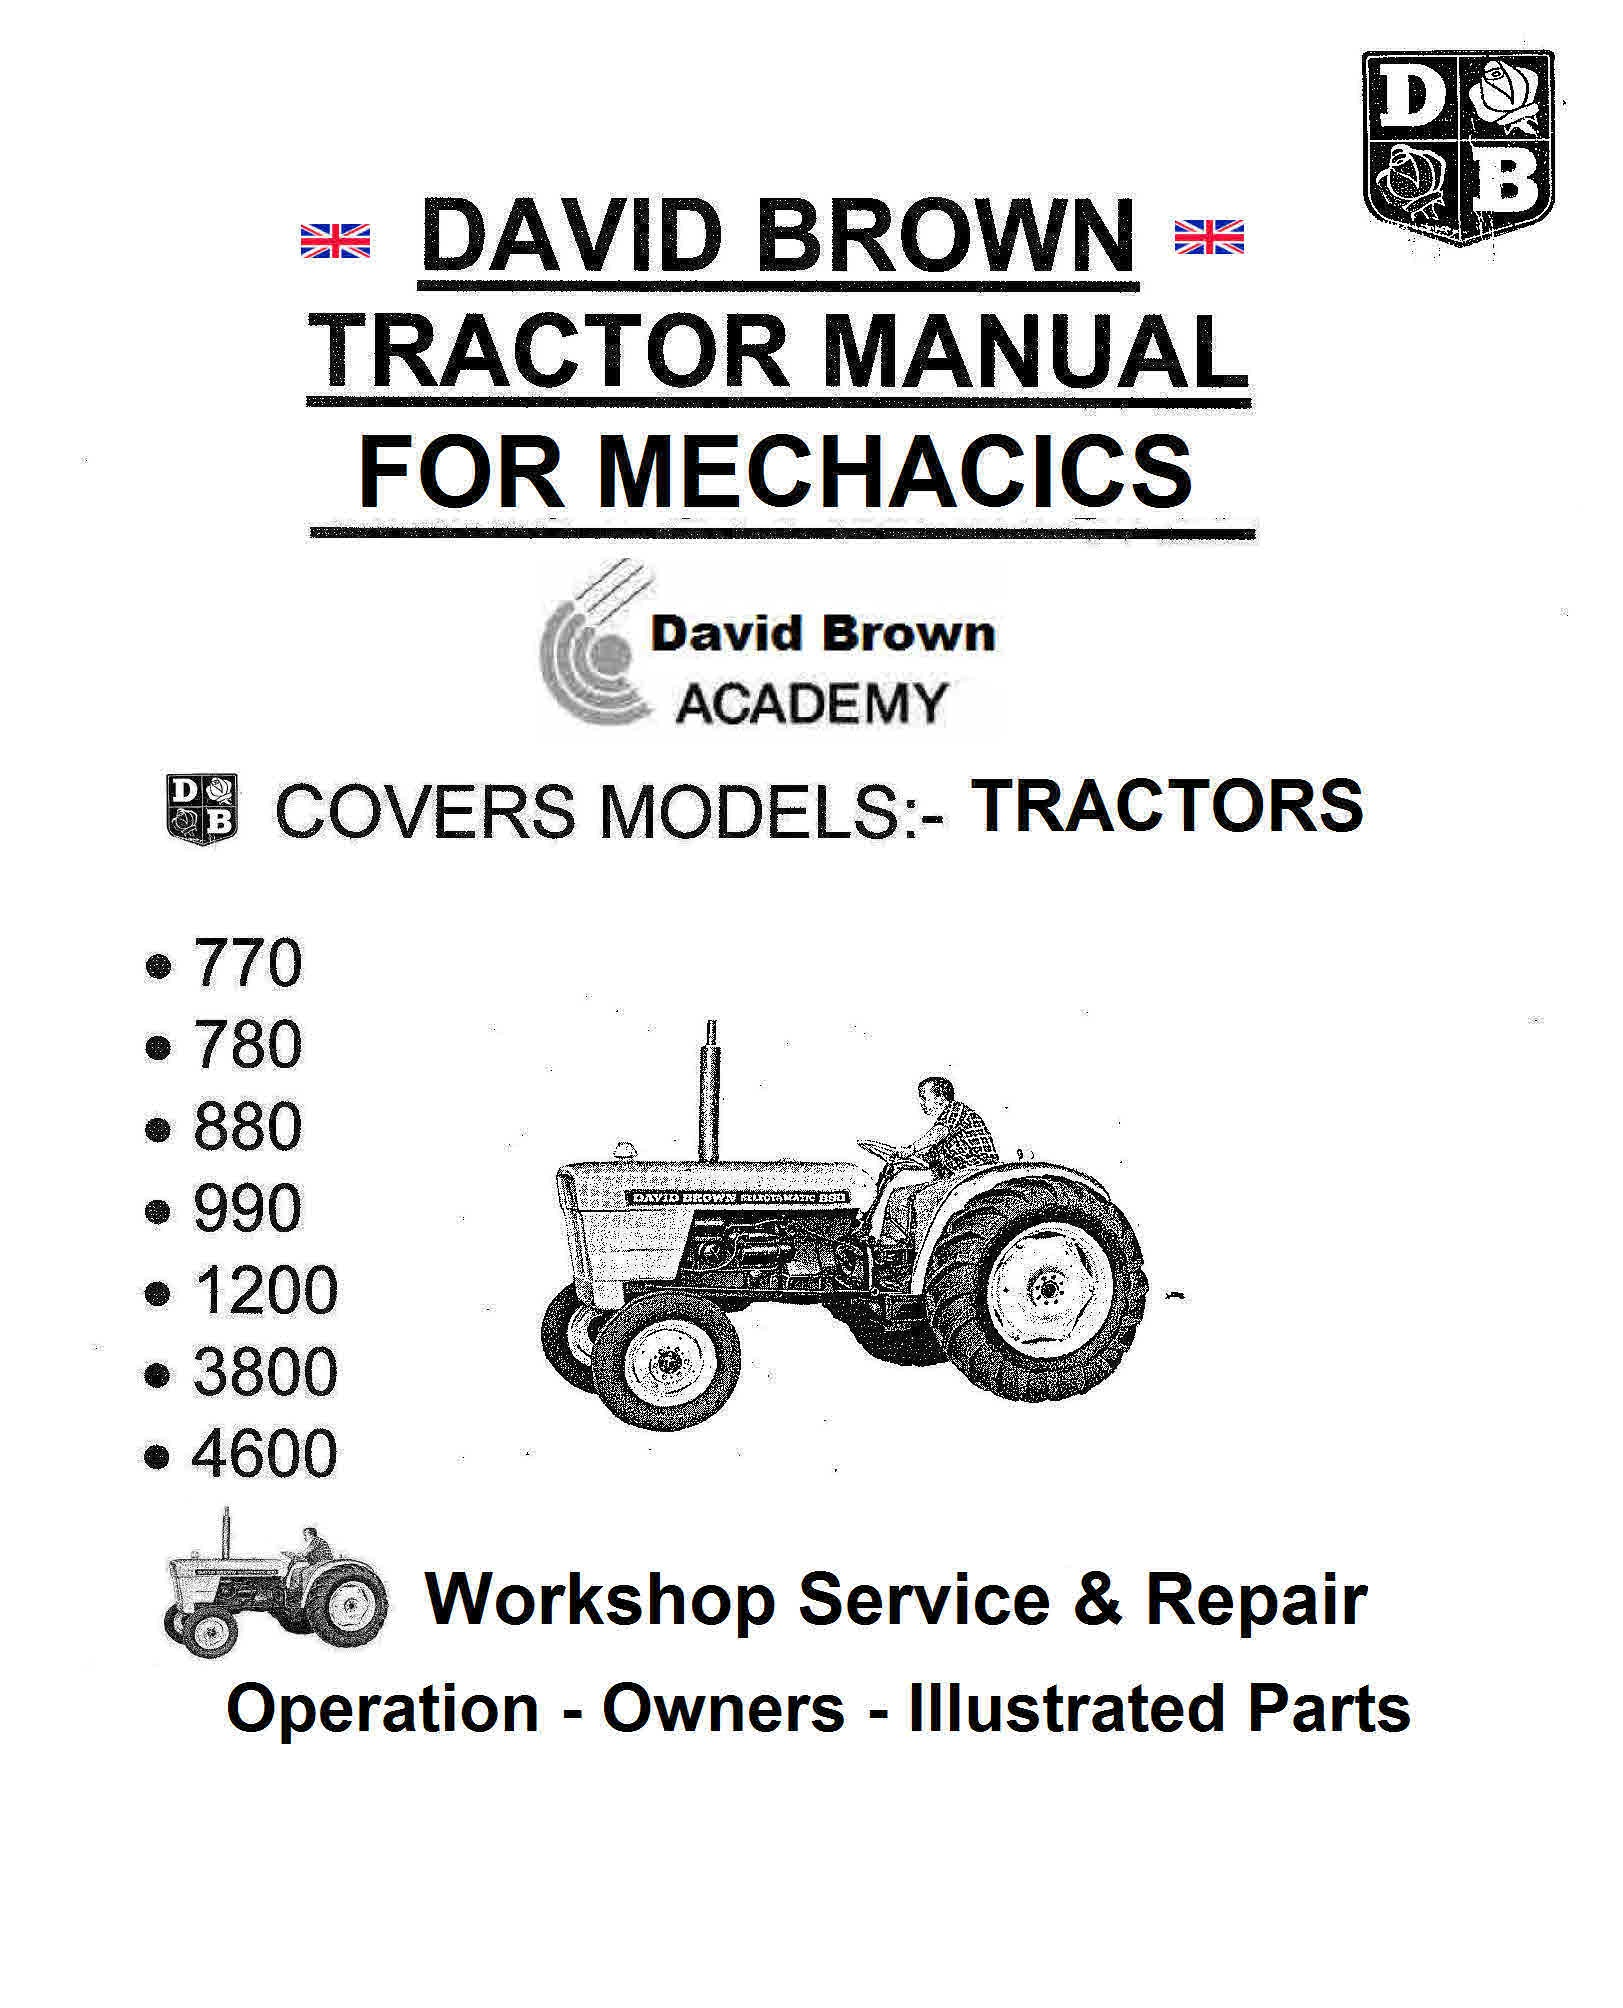 David Brown Tractor Service Manuals for Mechanics 14 Service Operation and Parts  Manuals in this series of Vintage Tractor Manuals